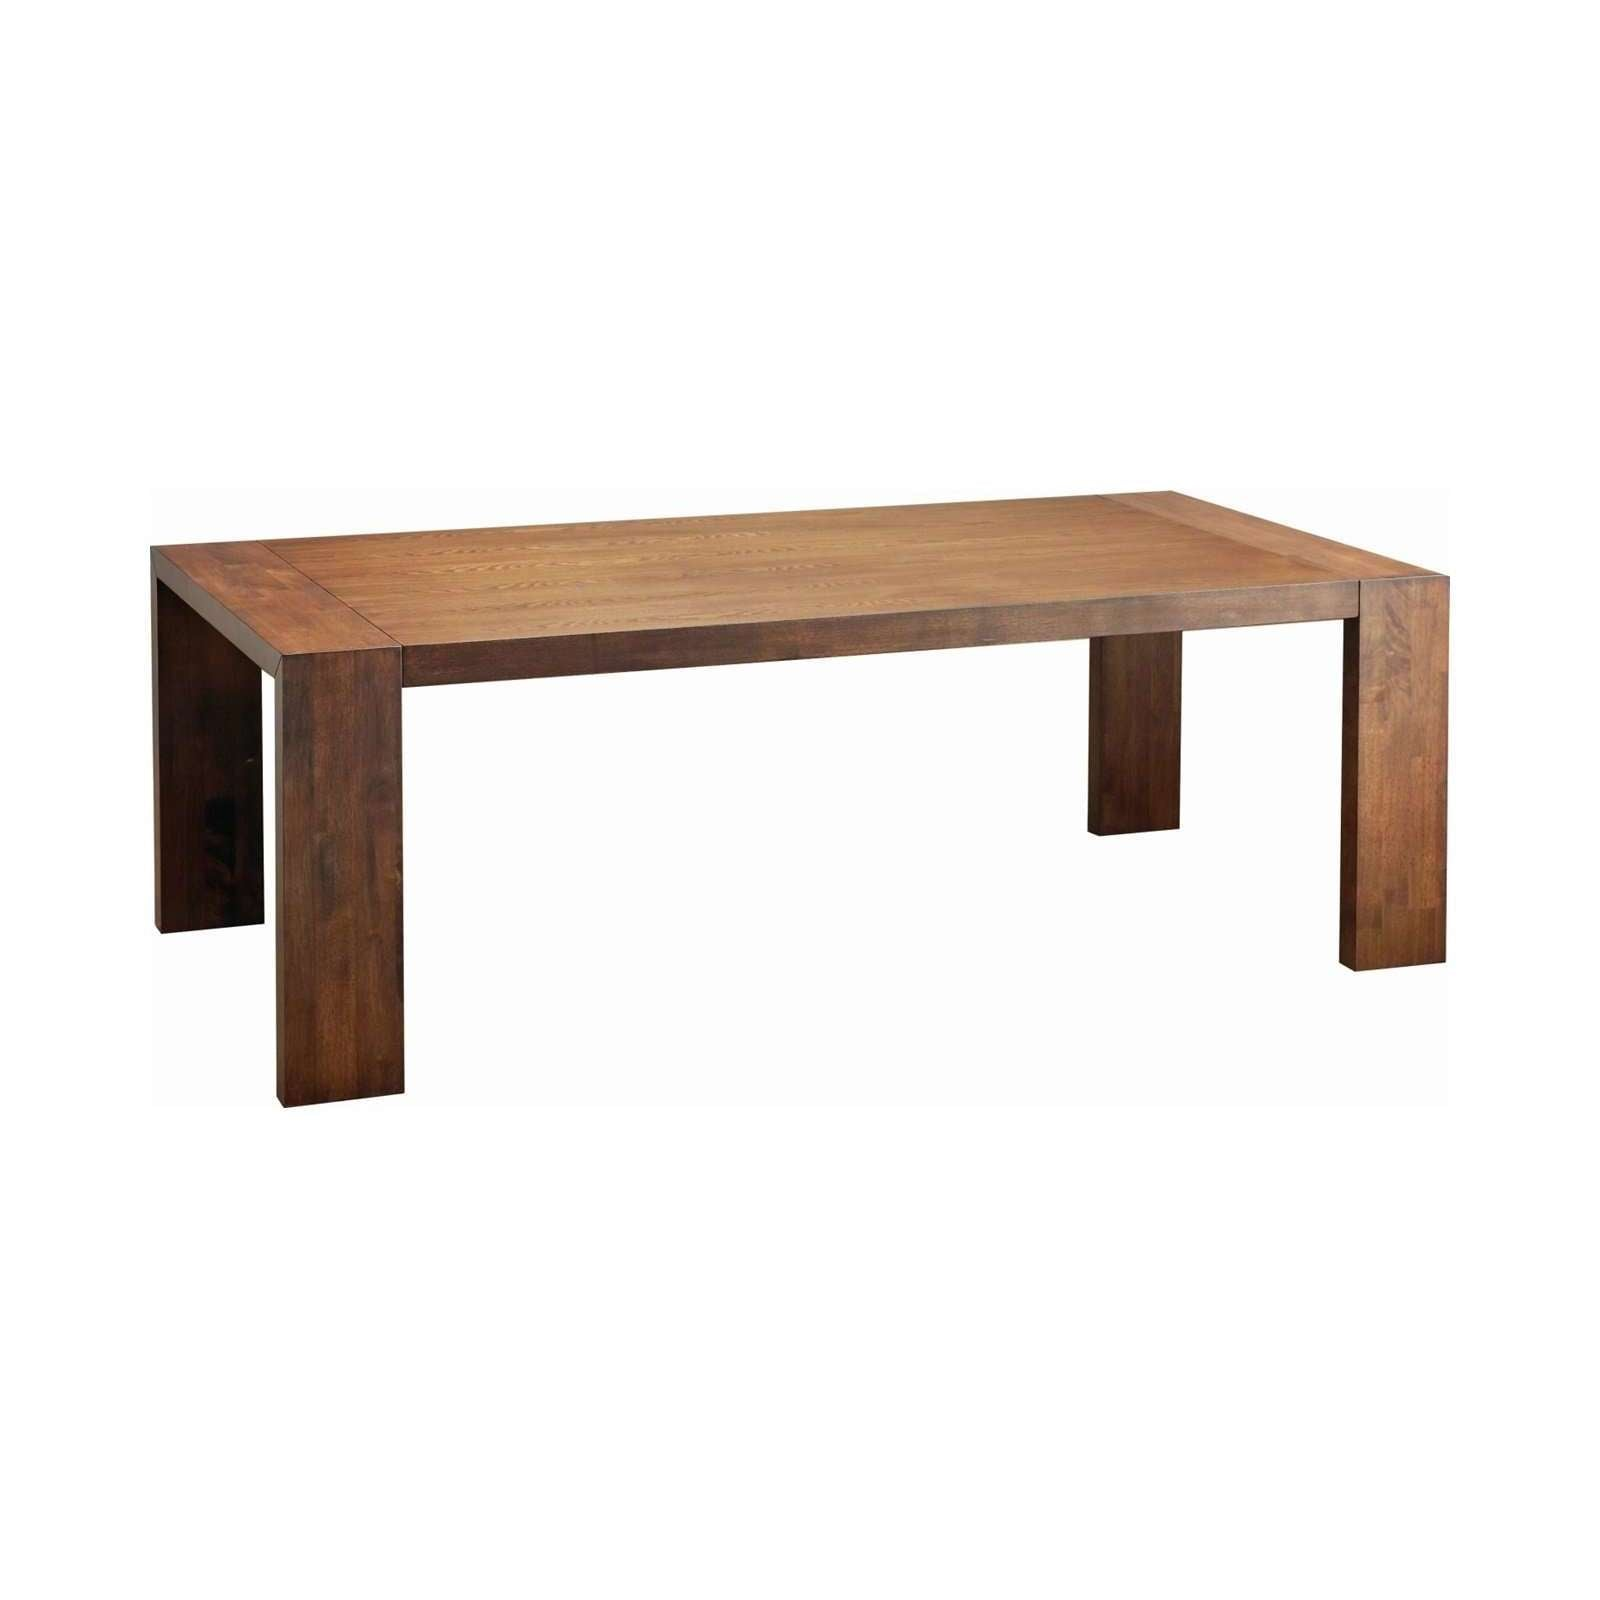 CLARKSON Dining Table in Cocoa Colour